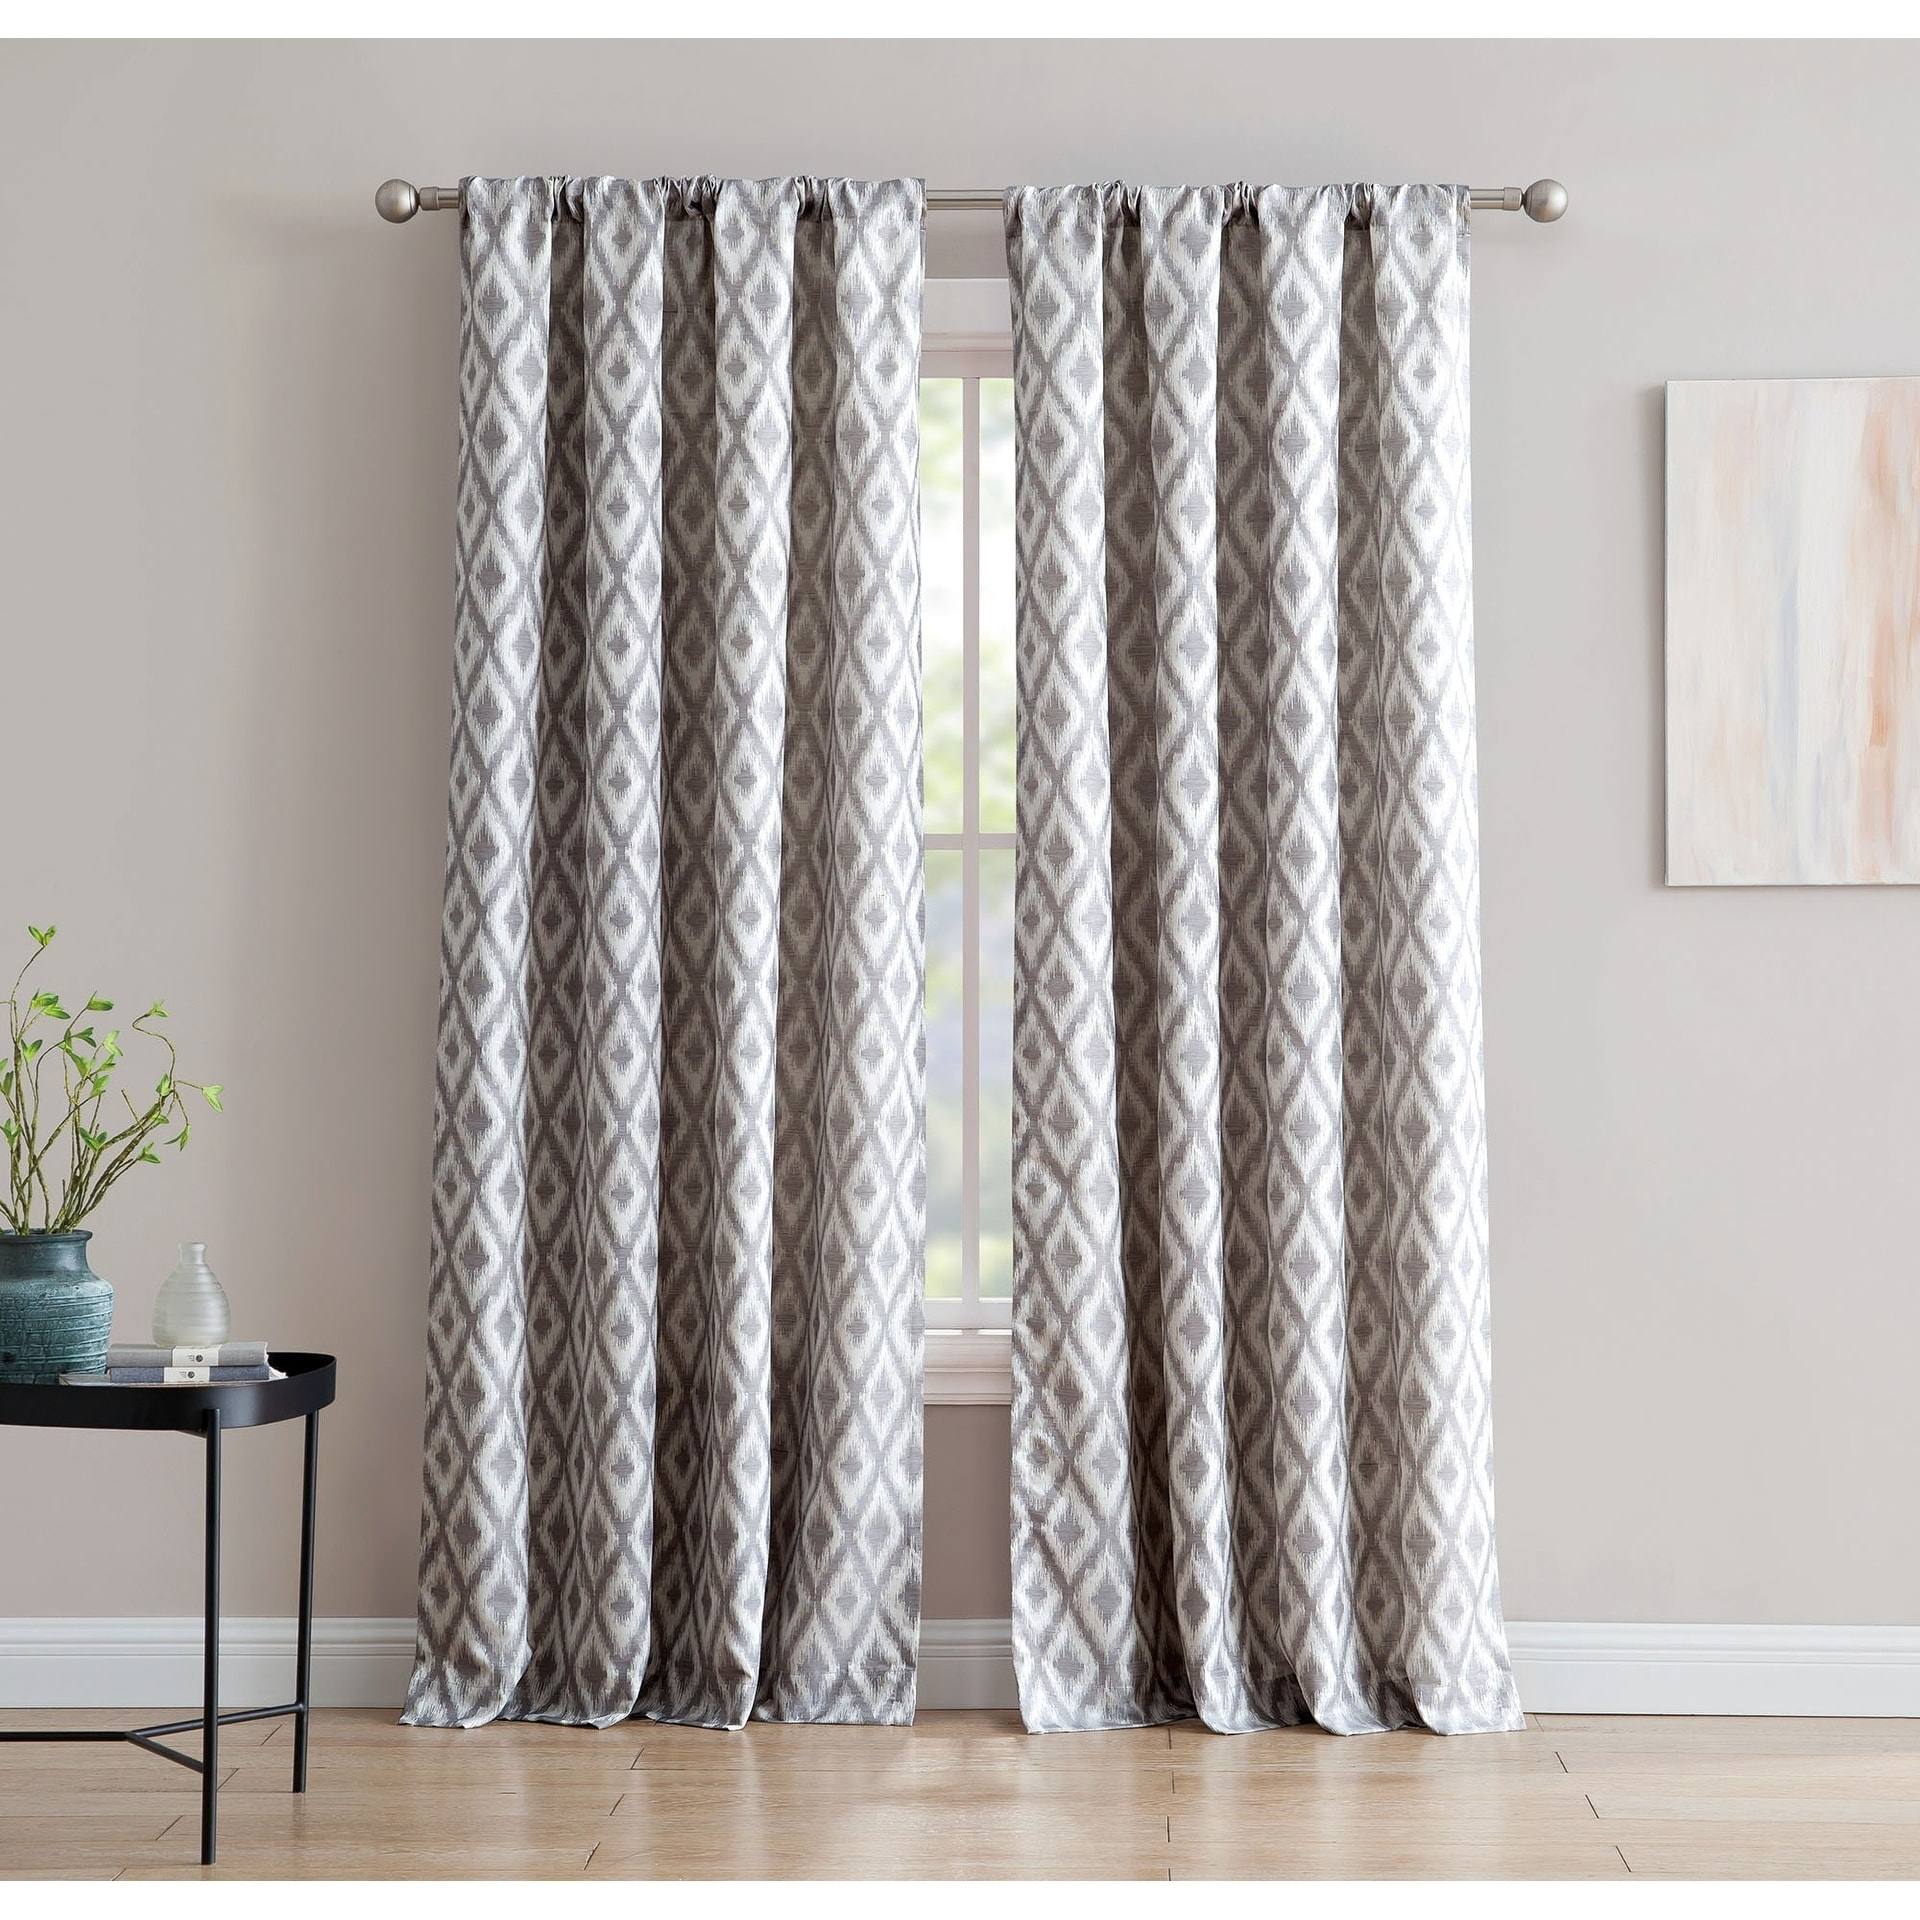 Kalahari Jacquard 84 Inch Window Curtain With Rod Pocket Regarding Sunsmart Dahlia Paisley Printed Total Blackout Single Window Curtain Panels (View 16 of 30)